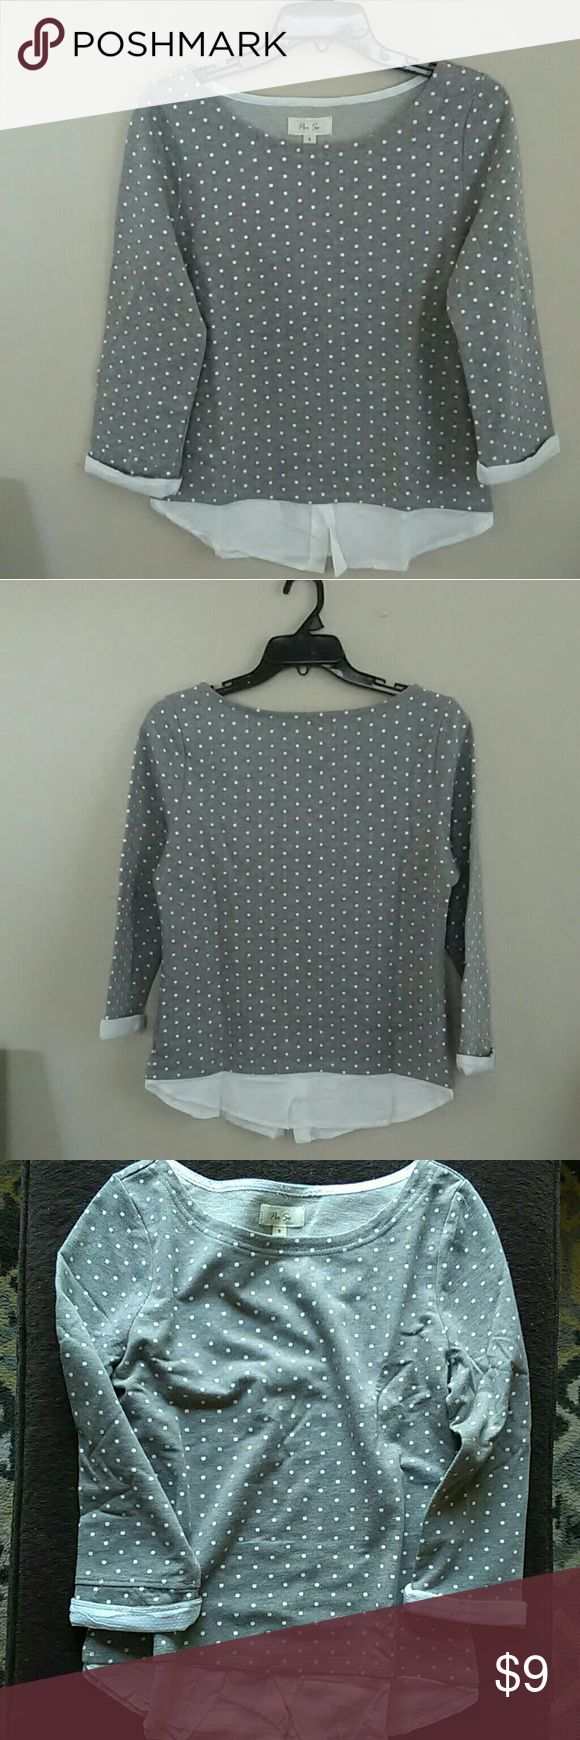 Polka Dot Gray Shirt Like Trimmed Women's Top Great for office. Style it with a pair white/beige/Heather gray trousers and flats or pumps!  Size:S  Relatively loose fitting. 60% Cotton 40%Polyester Per Se  Tops